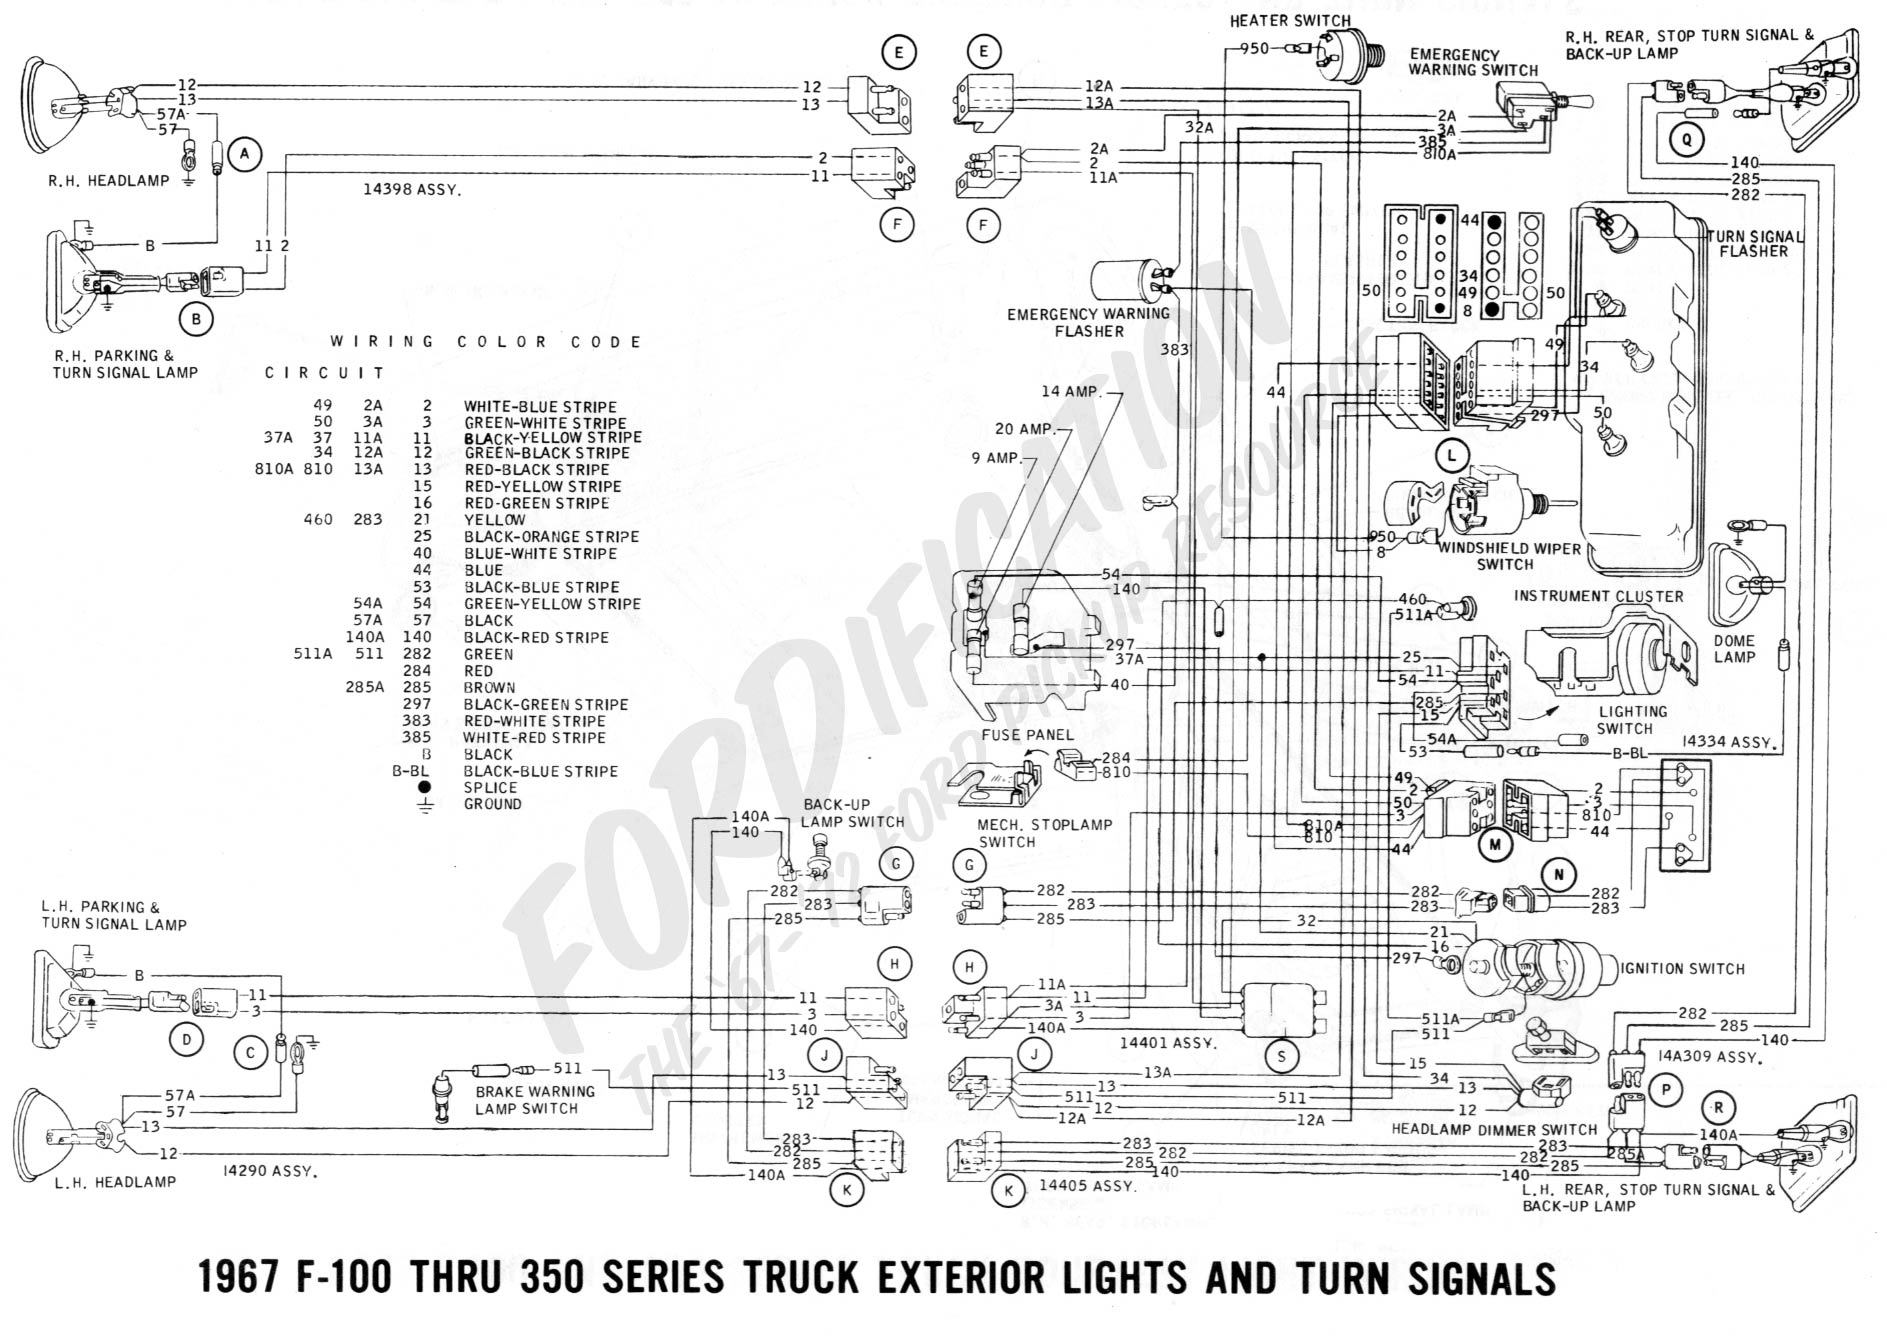 80 1967_exterior_lights_and_turn_signals_page_2_1db6c529c4c9567560e56d6320f993290ba5b803 1967 mustang wiring diagram efcaviation com 67 mustang wiring diagram at bakdesigns.co